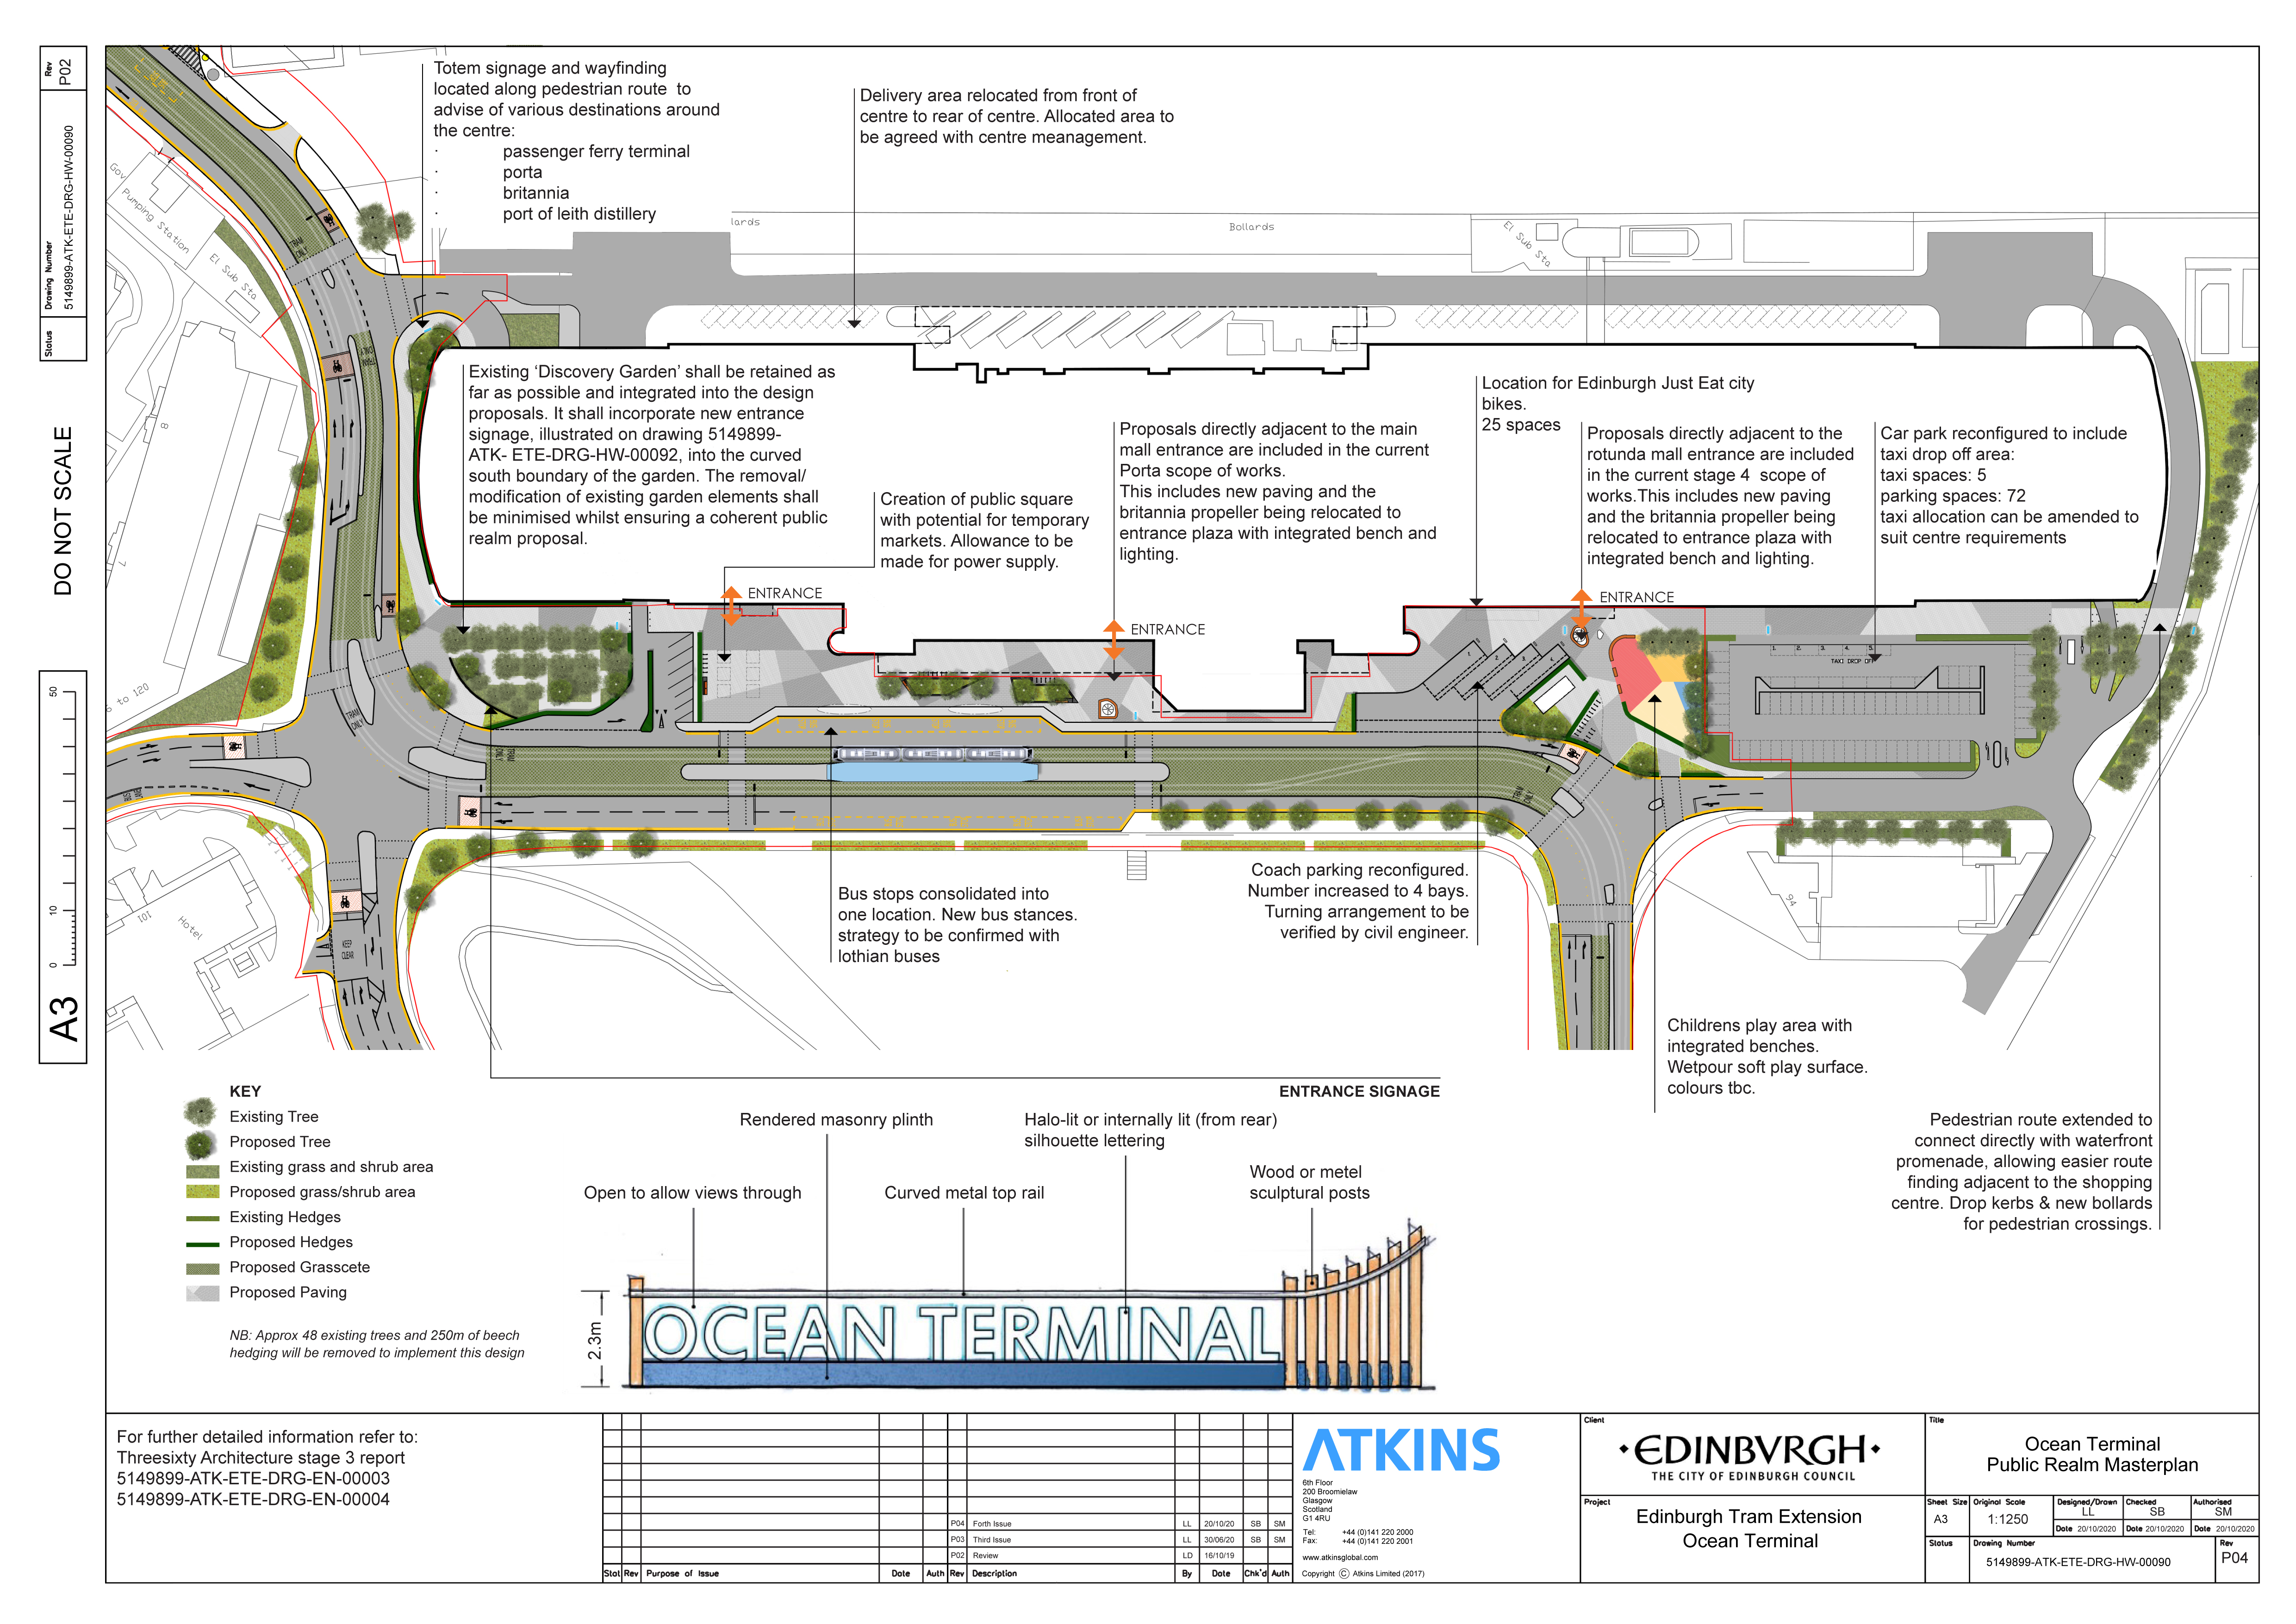 drawing of Ocean Terminal tram-plans, showing retention of Discovery Gardens